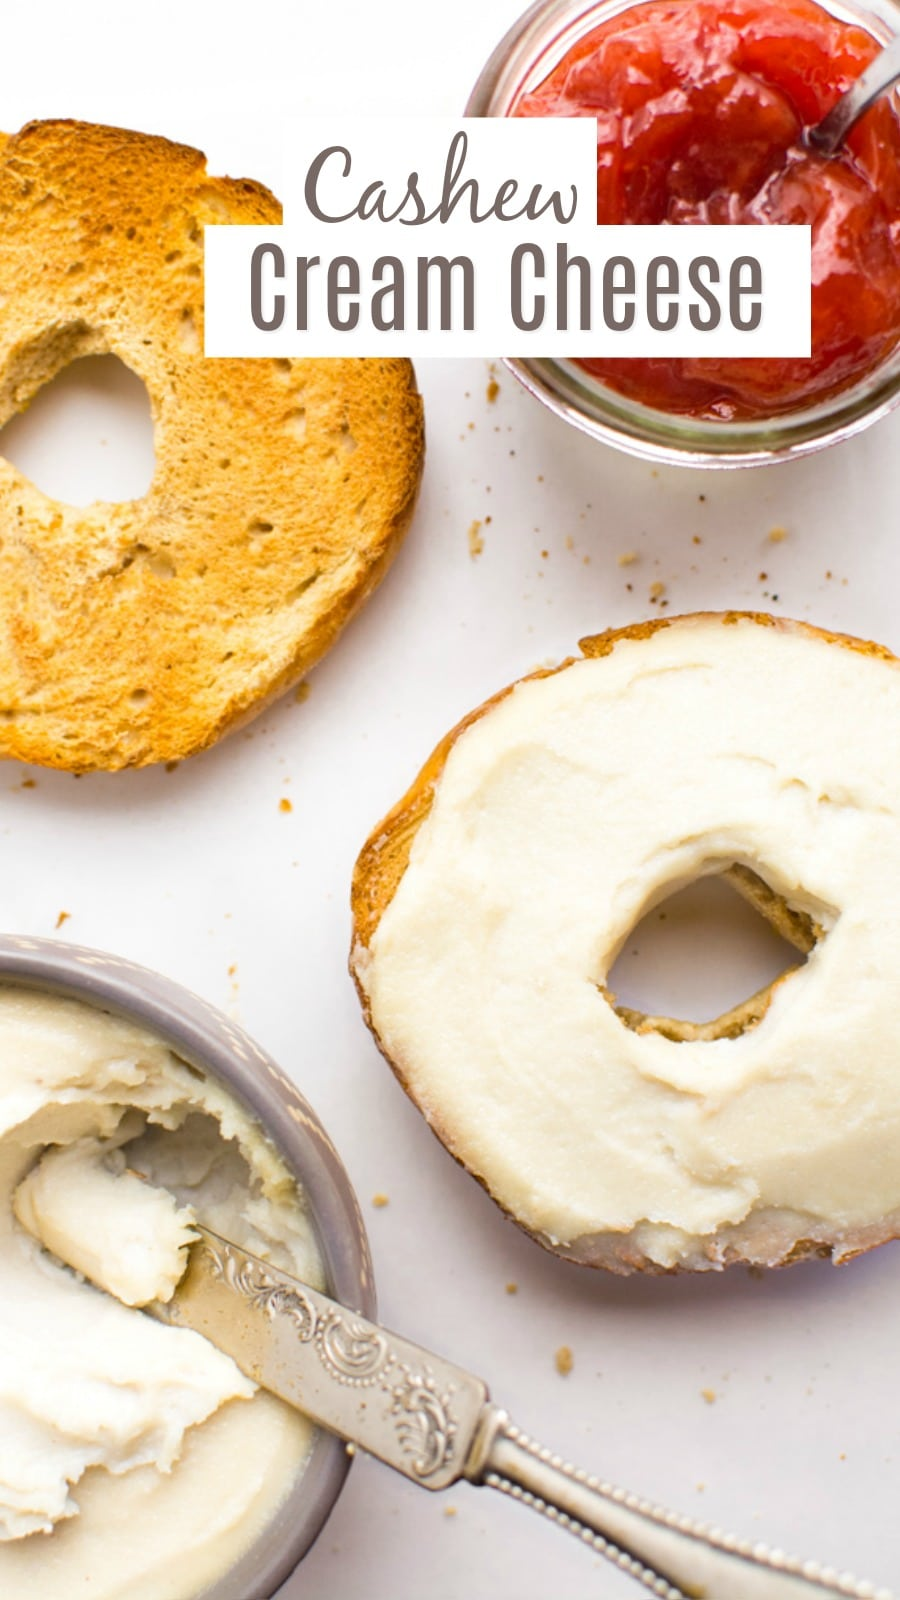 Cashew cream cheese spread on a toasted bagel with writing for Pinterest.